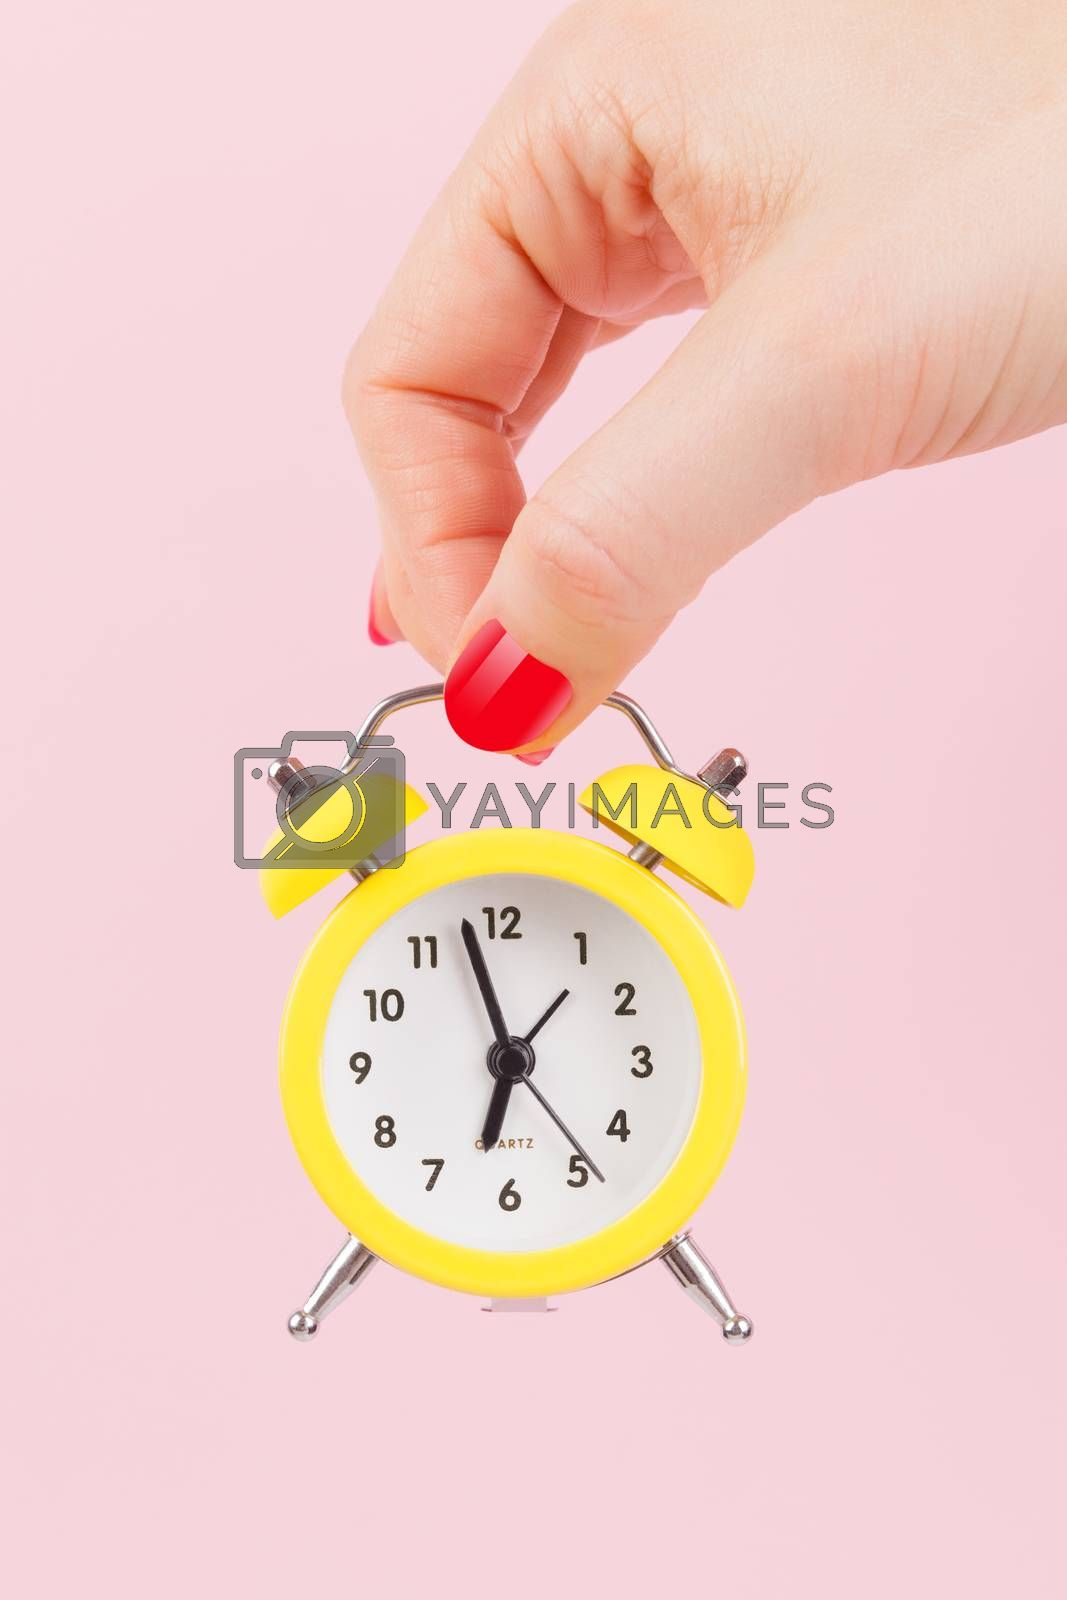 Female hand with yellow alarm clock on pink background. Deadline. Running late. Just in time. Time concept.